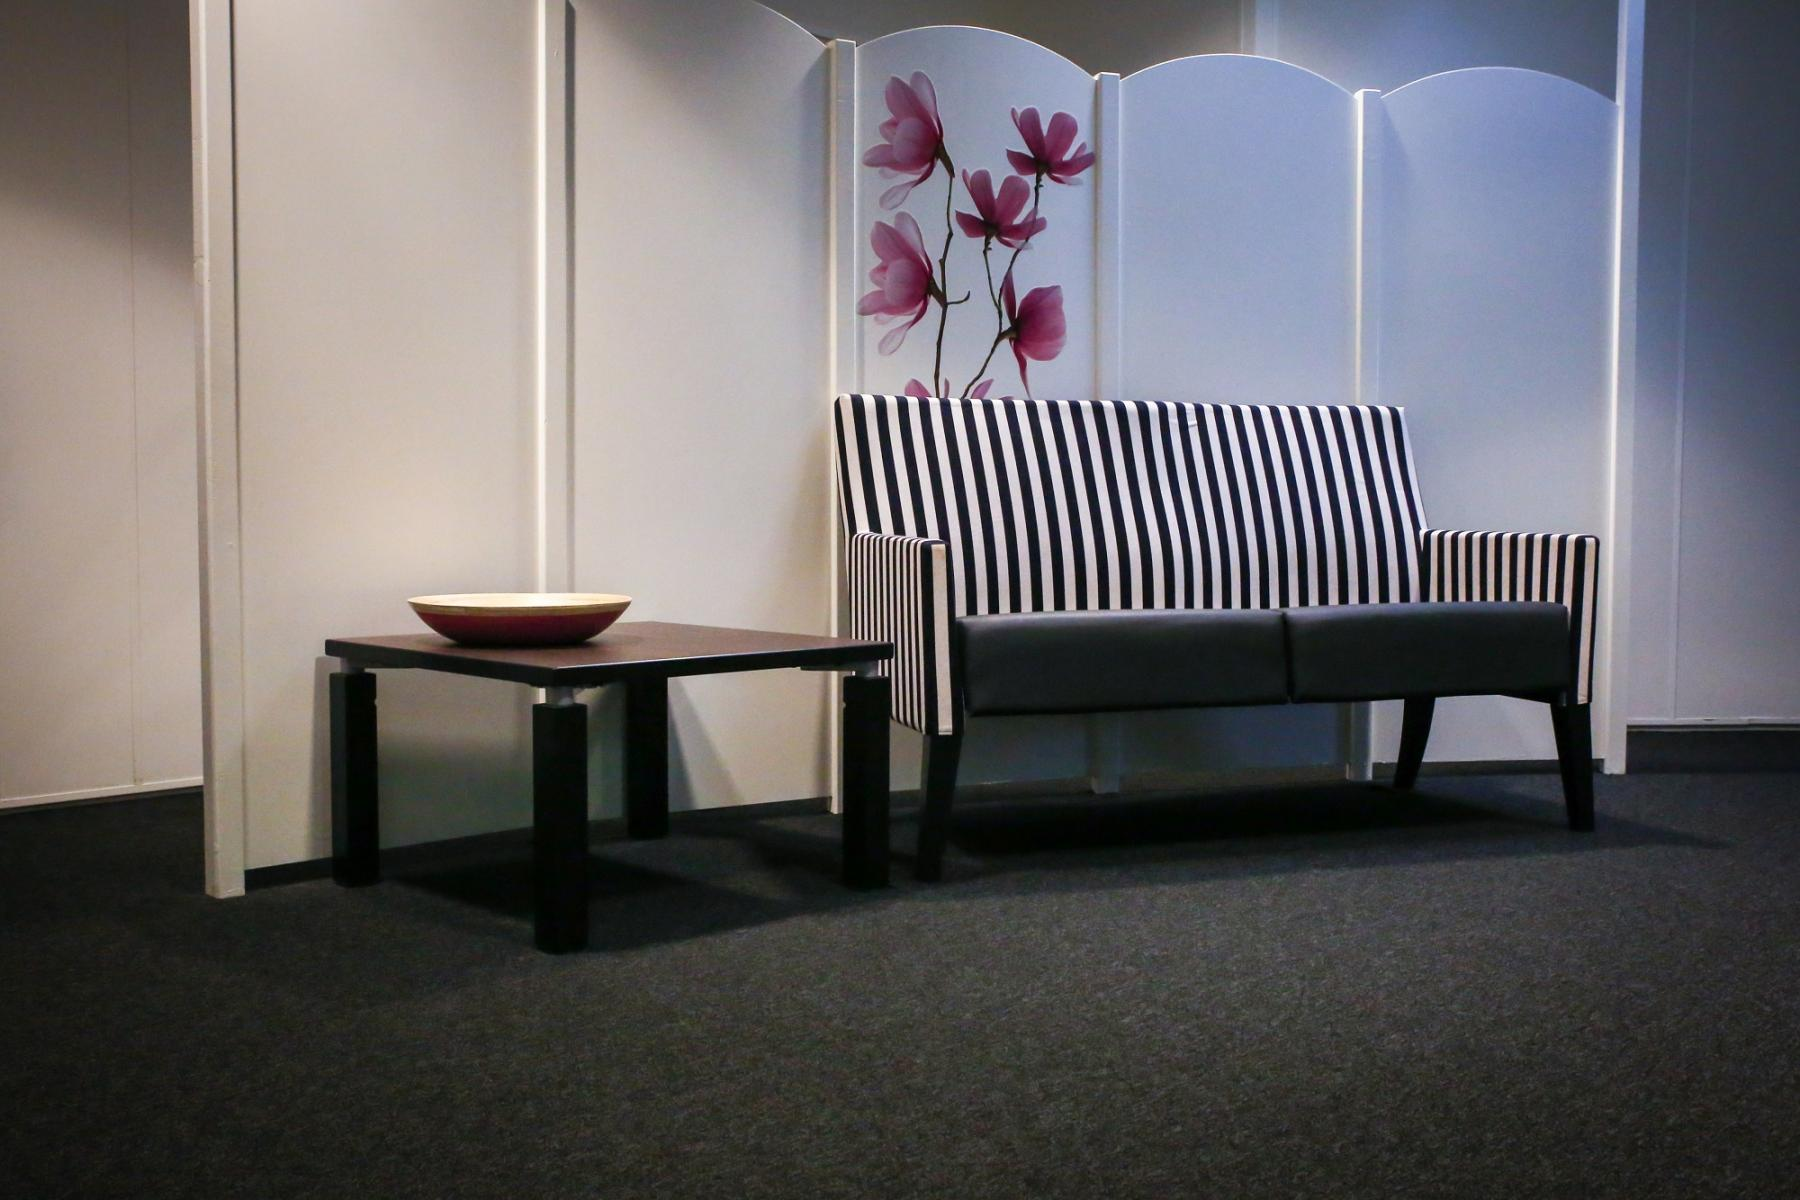 couch white striped flowers table